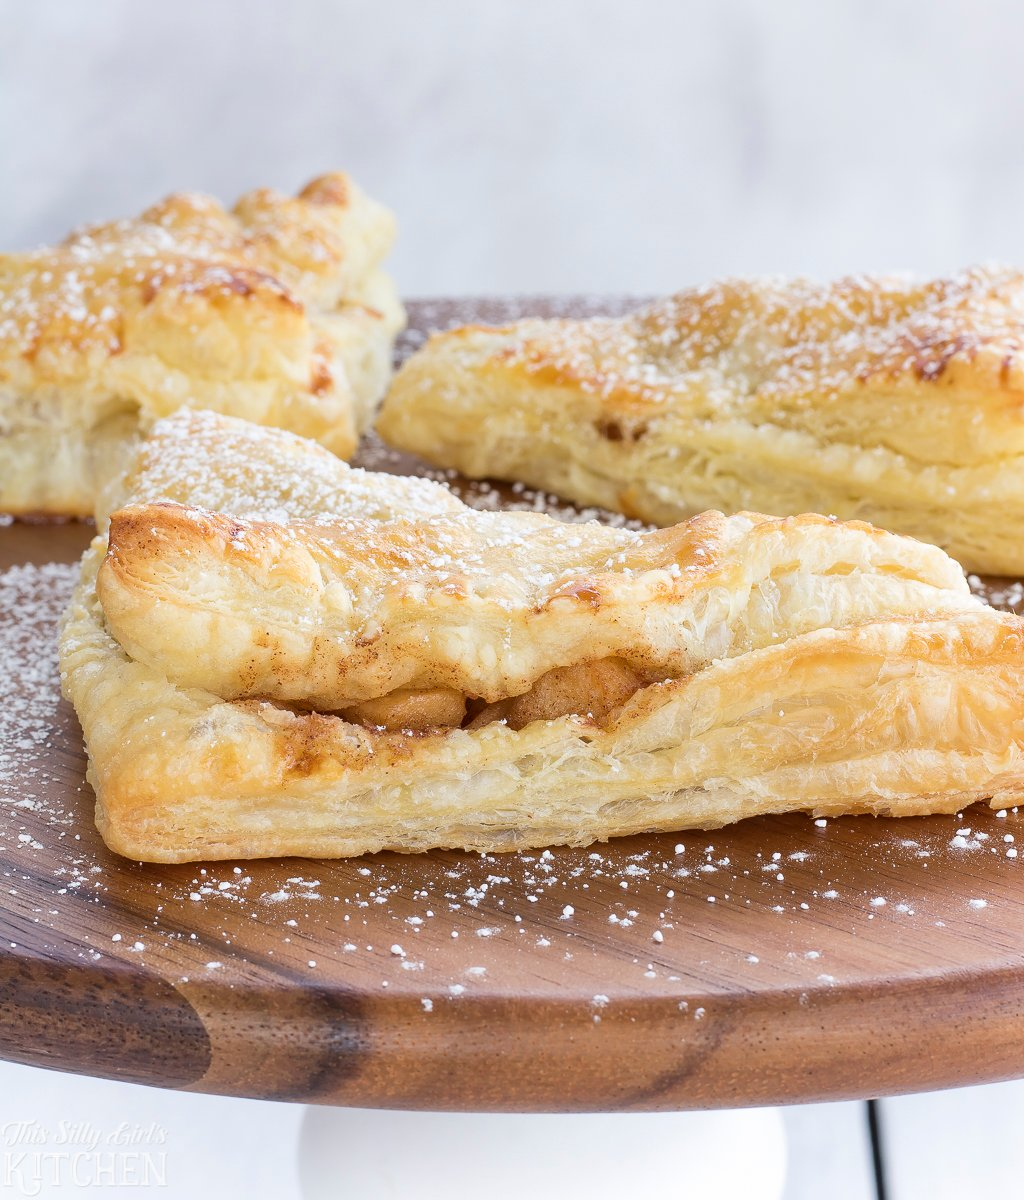 Fried Apple Turnovers, puff pastry filled with stove-top homemade fried apples!